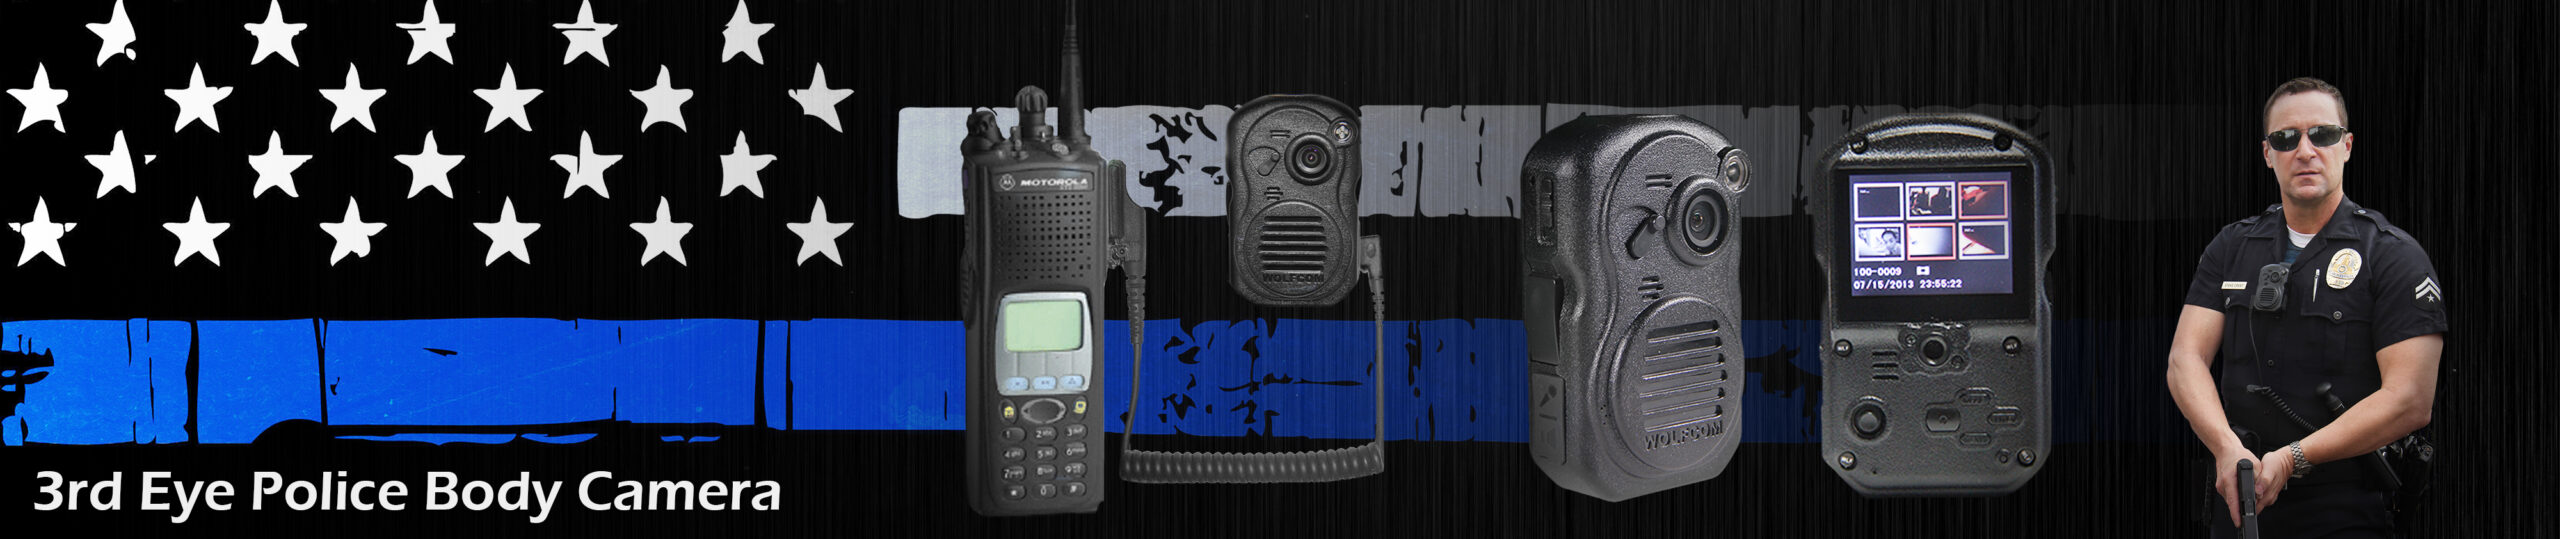 top banner for 3rd eye police body camera page on wolfcom usa website